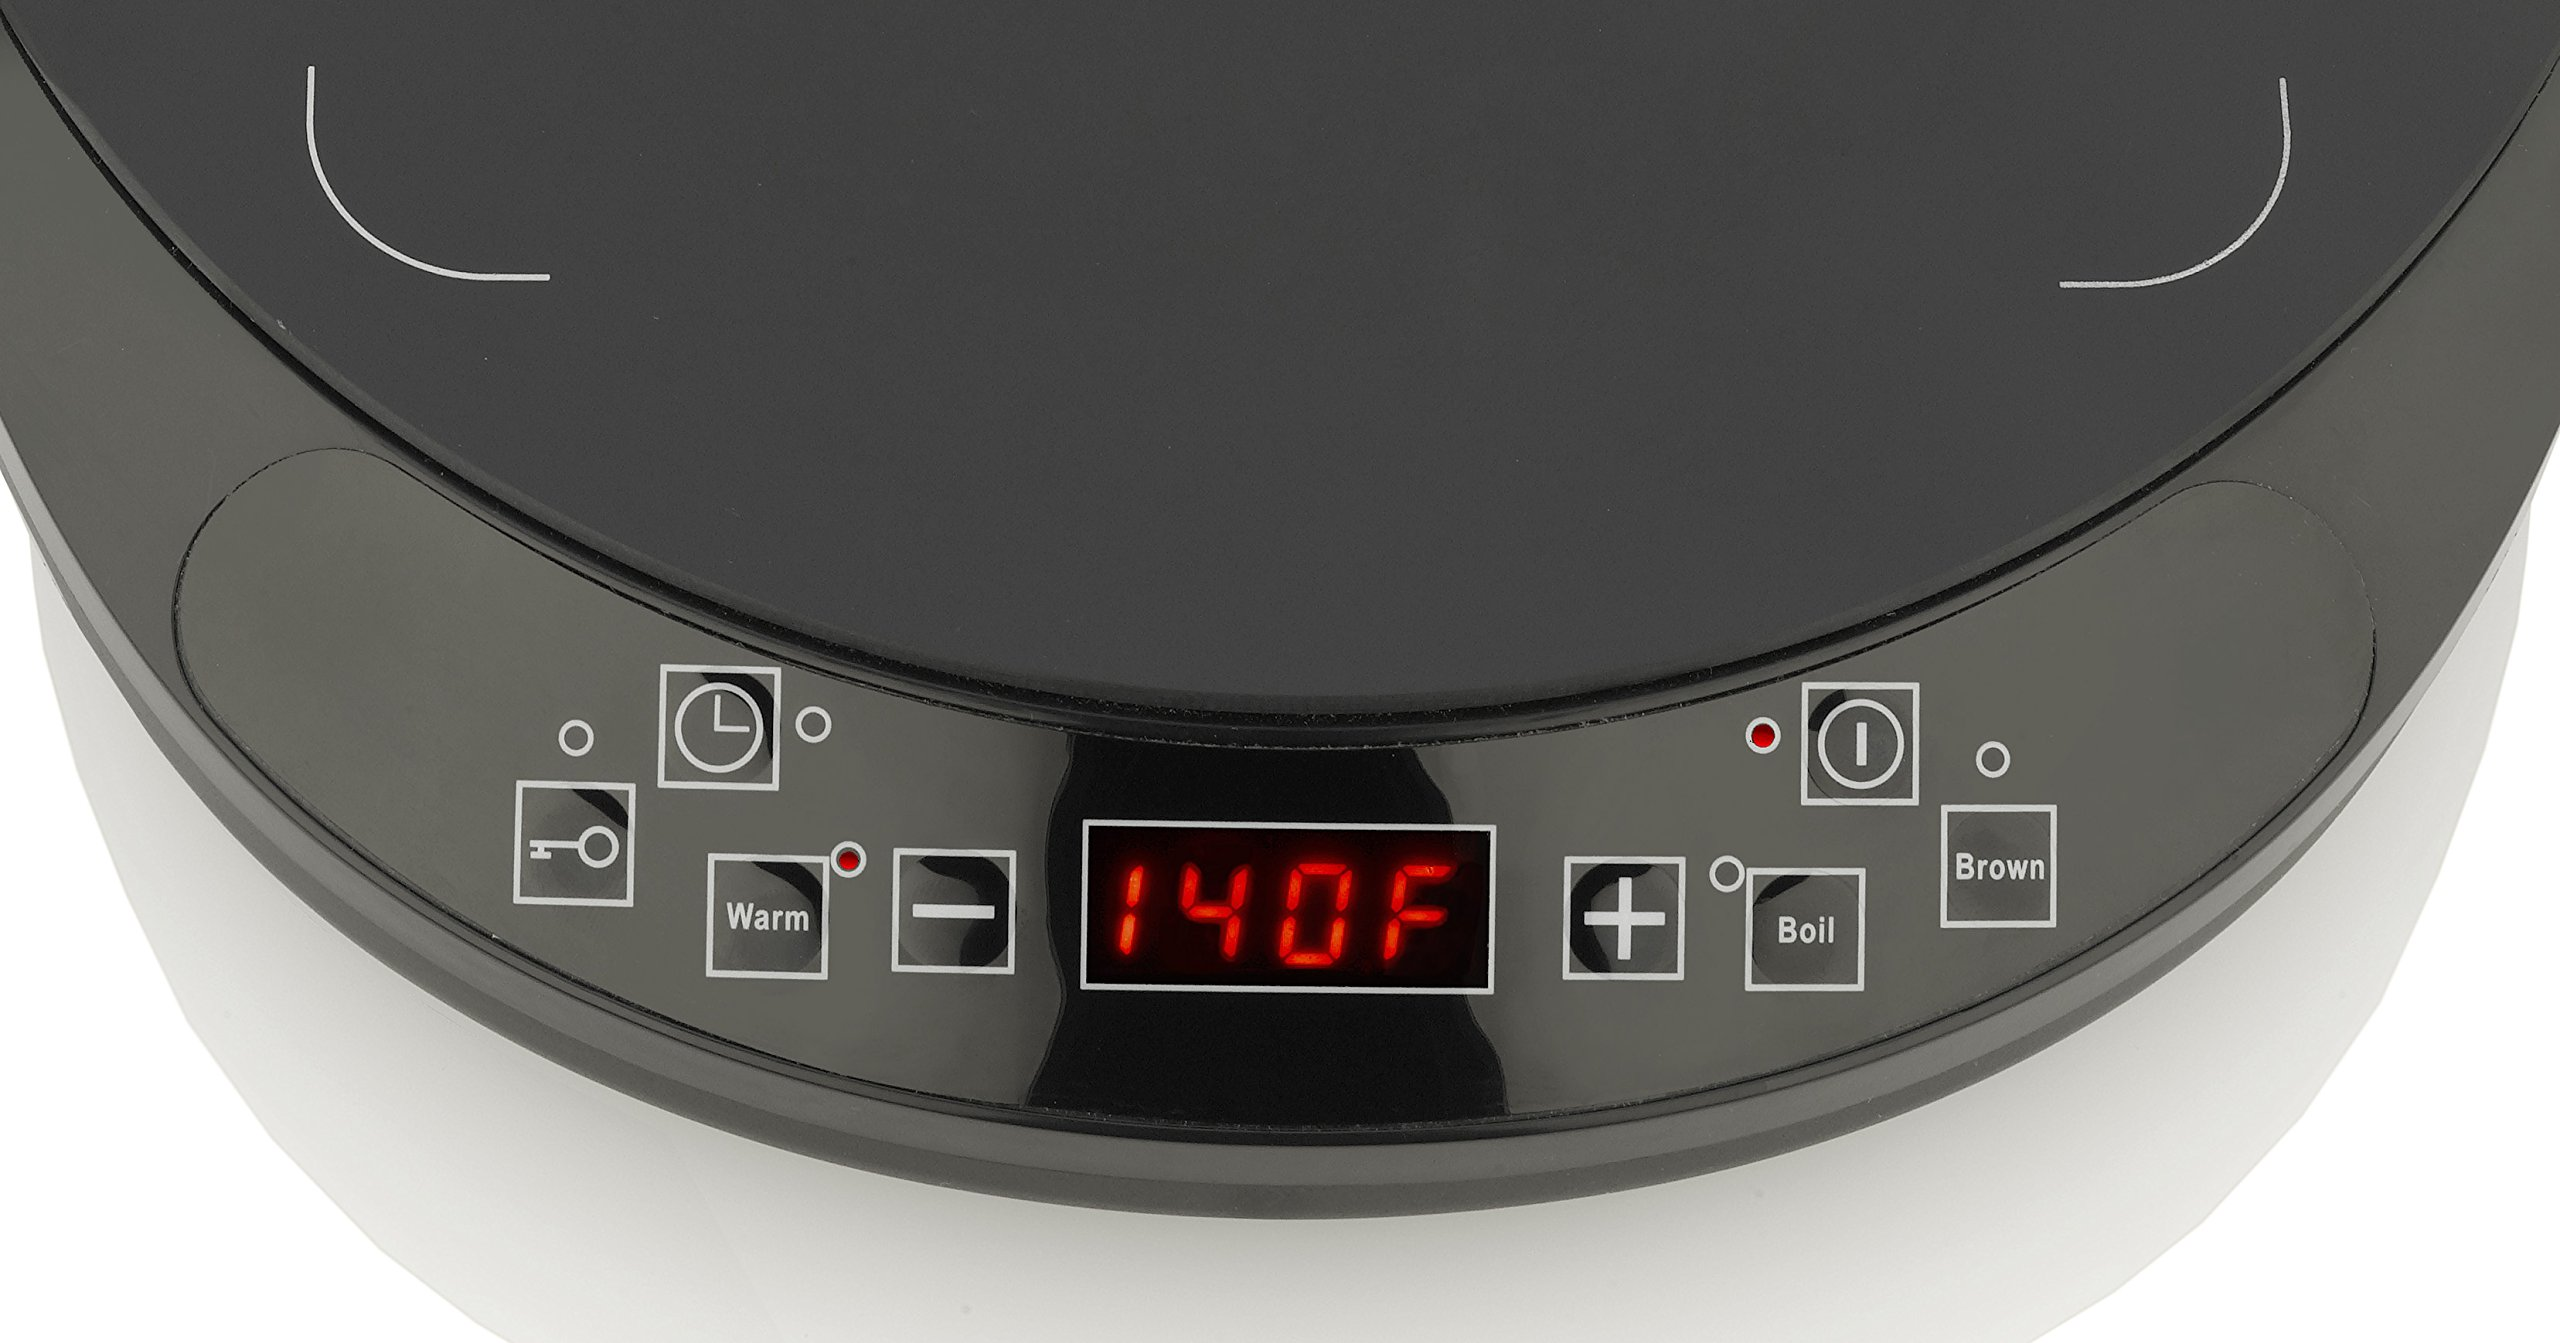 Fagor 2-Piece Induction Set with  Magnetic 1800 Watt Cooktop and 9.5'' induction ready PFOA Free Non-Stick Aluminum Skillet - 670041860 by Fagor (Image #2)